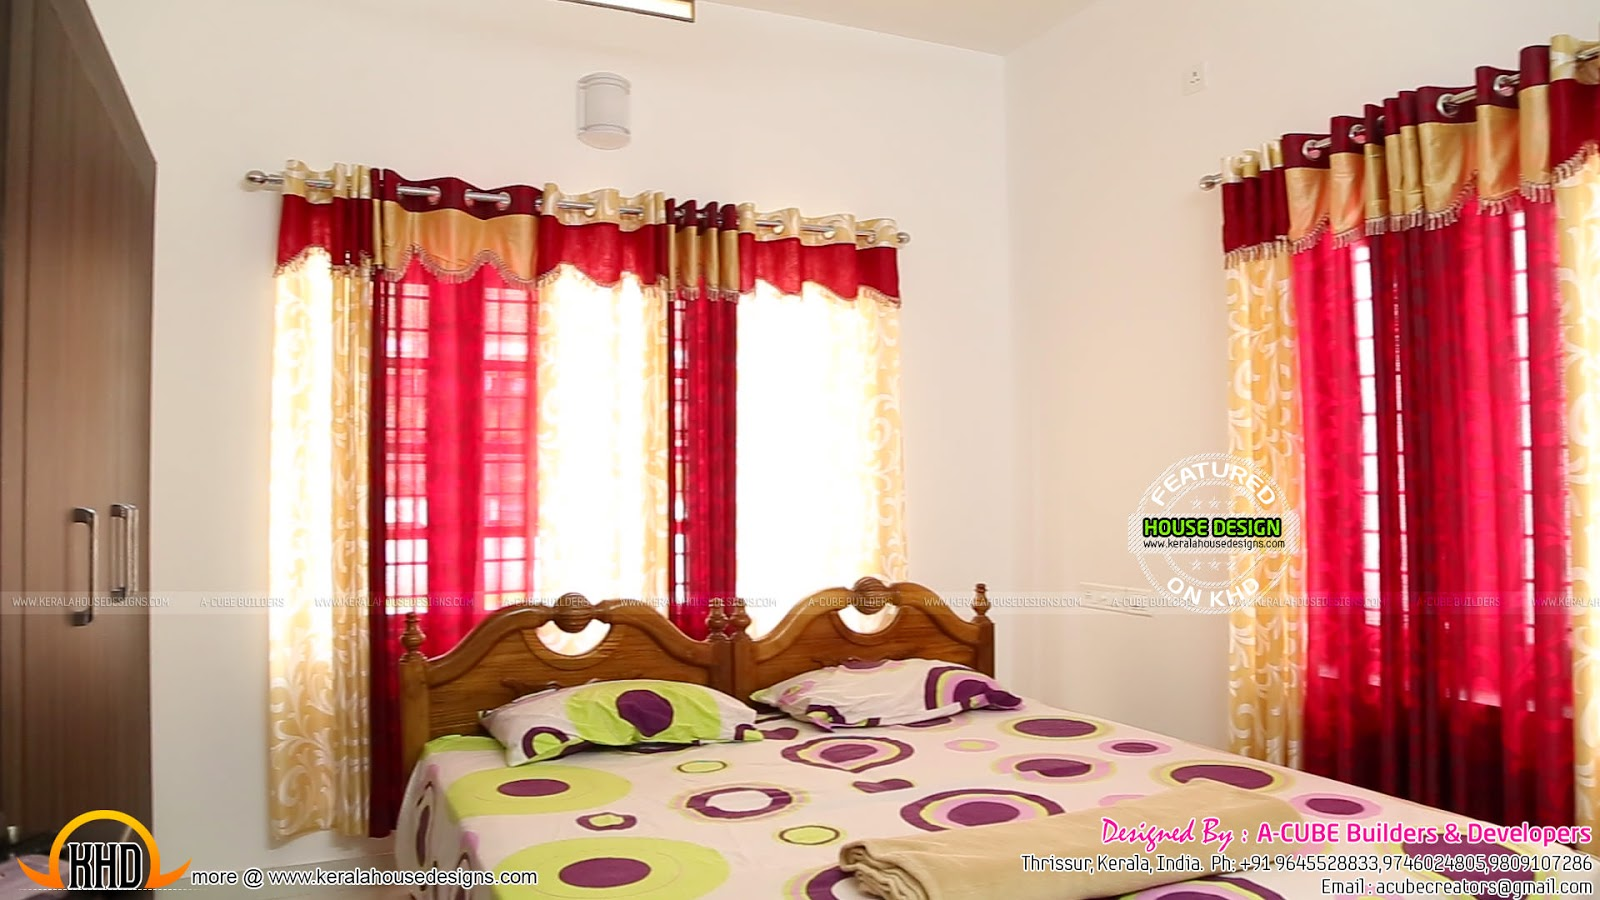 Living Room Interior Design Photo Gallery India Organization Furniture House Completed With Photographs - Kerala ...